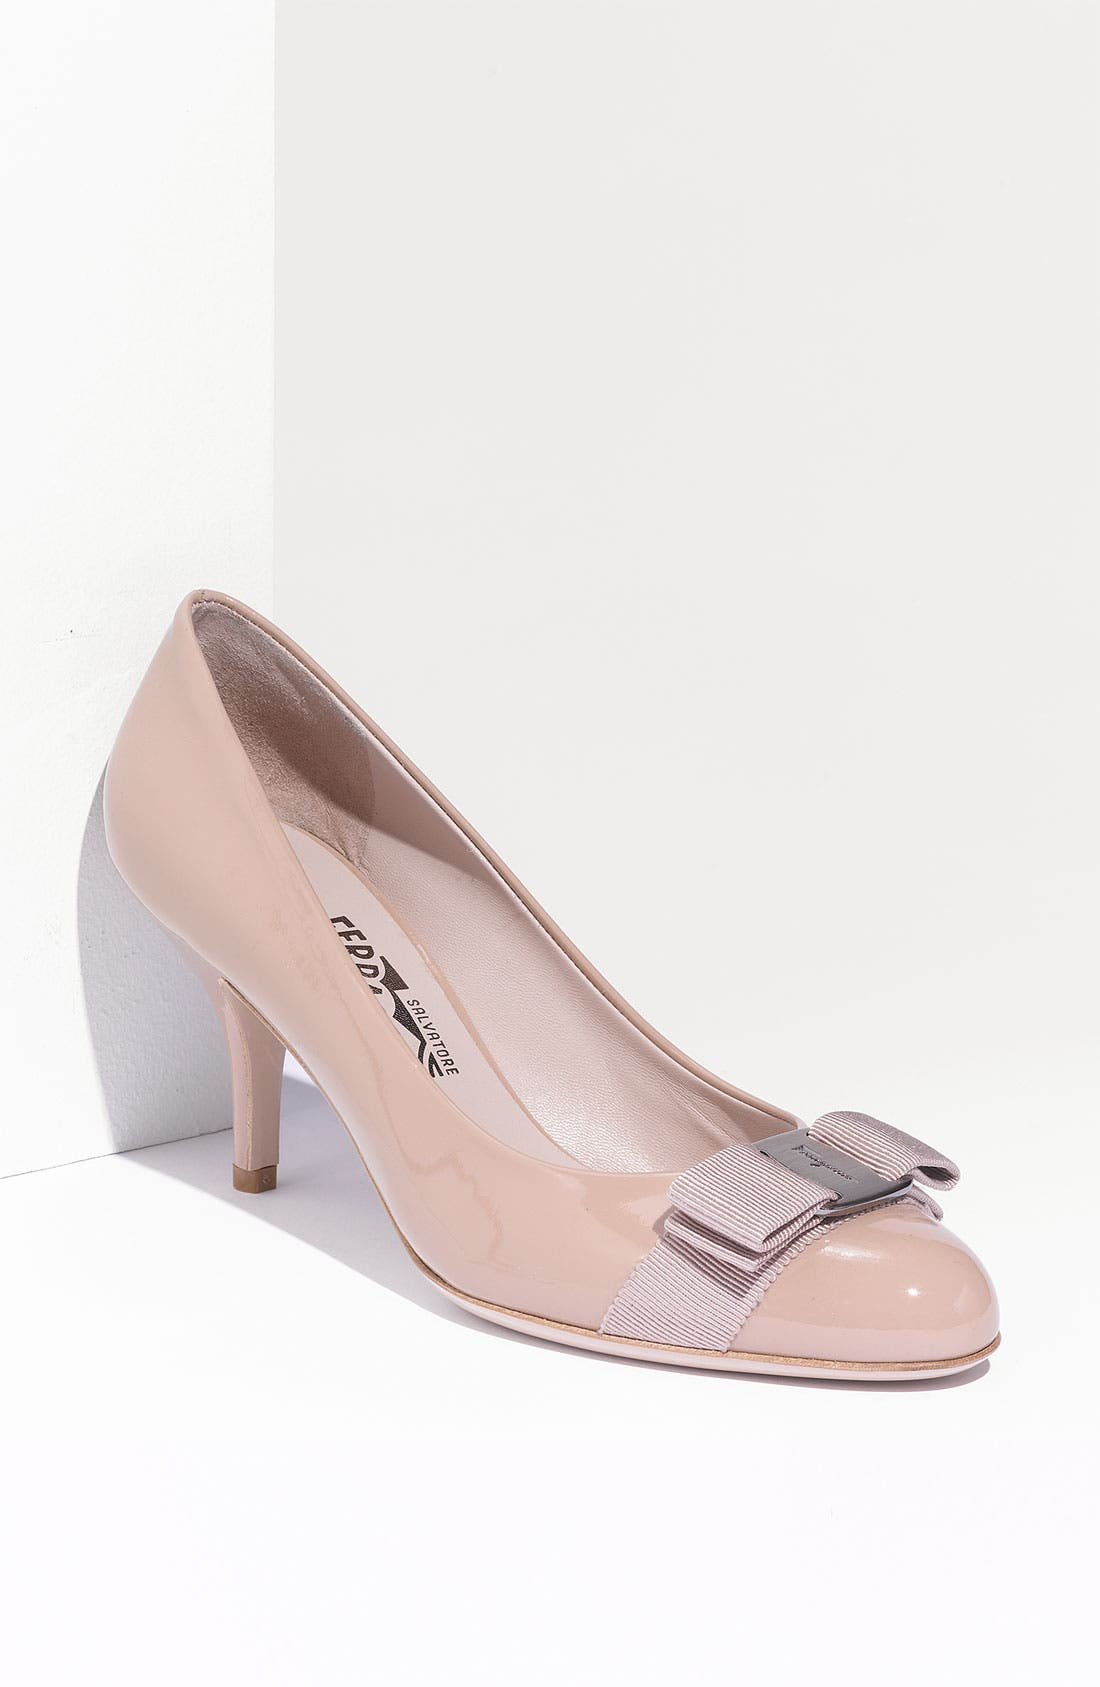 Alternate Image 1 Selected - Salvatore Ferragamo Carla Pump (Women)